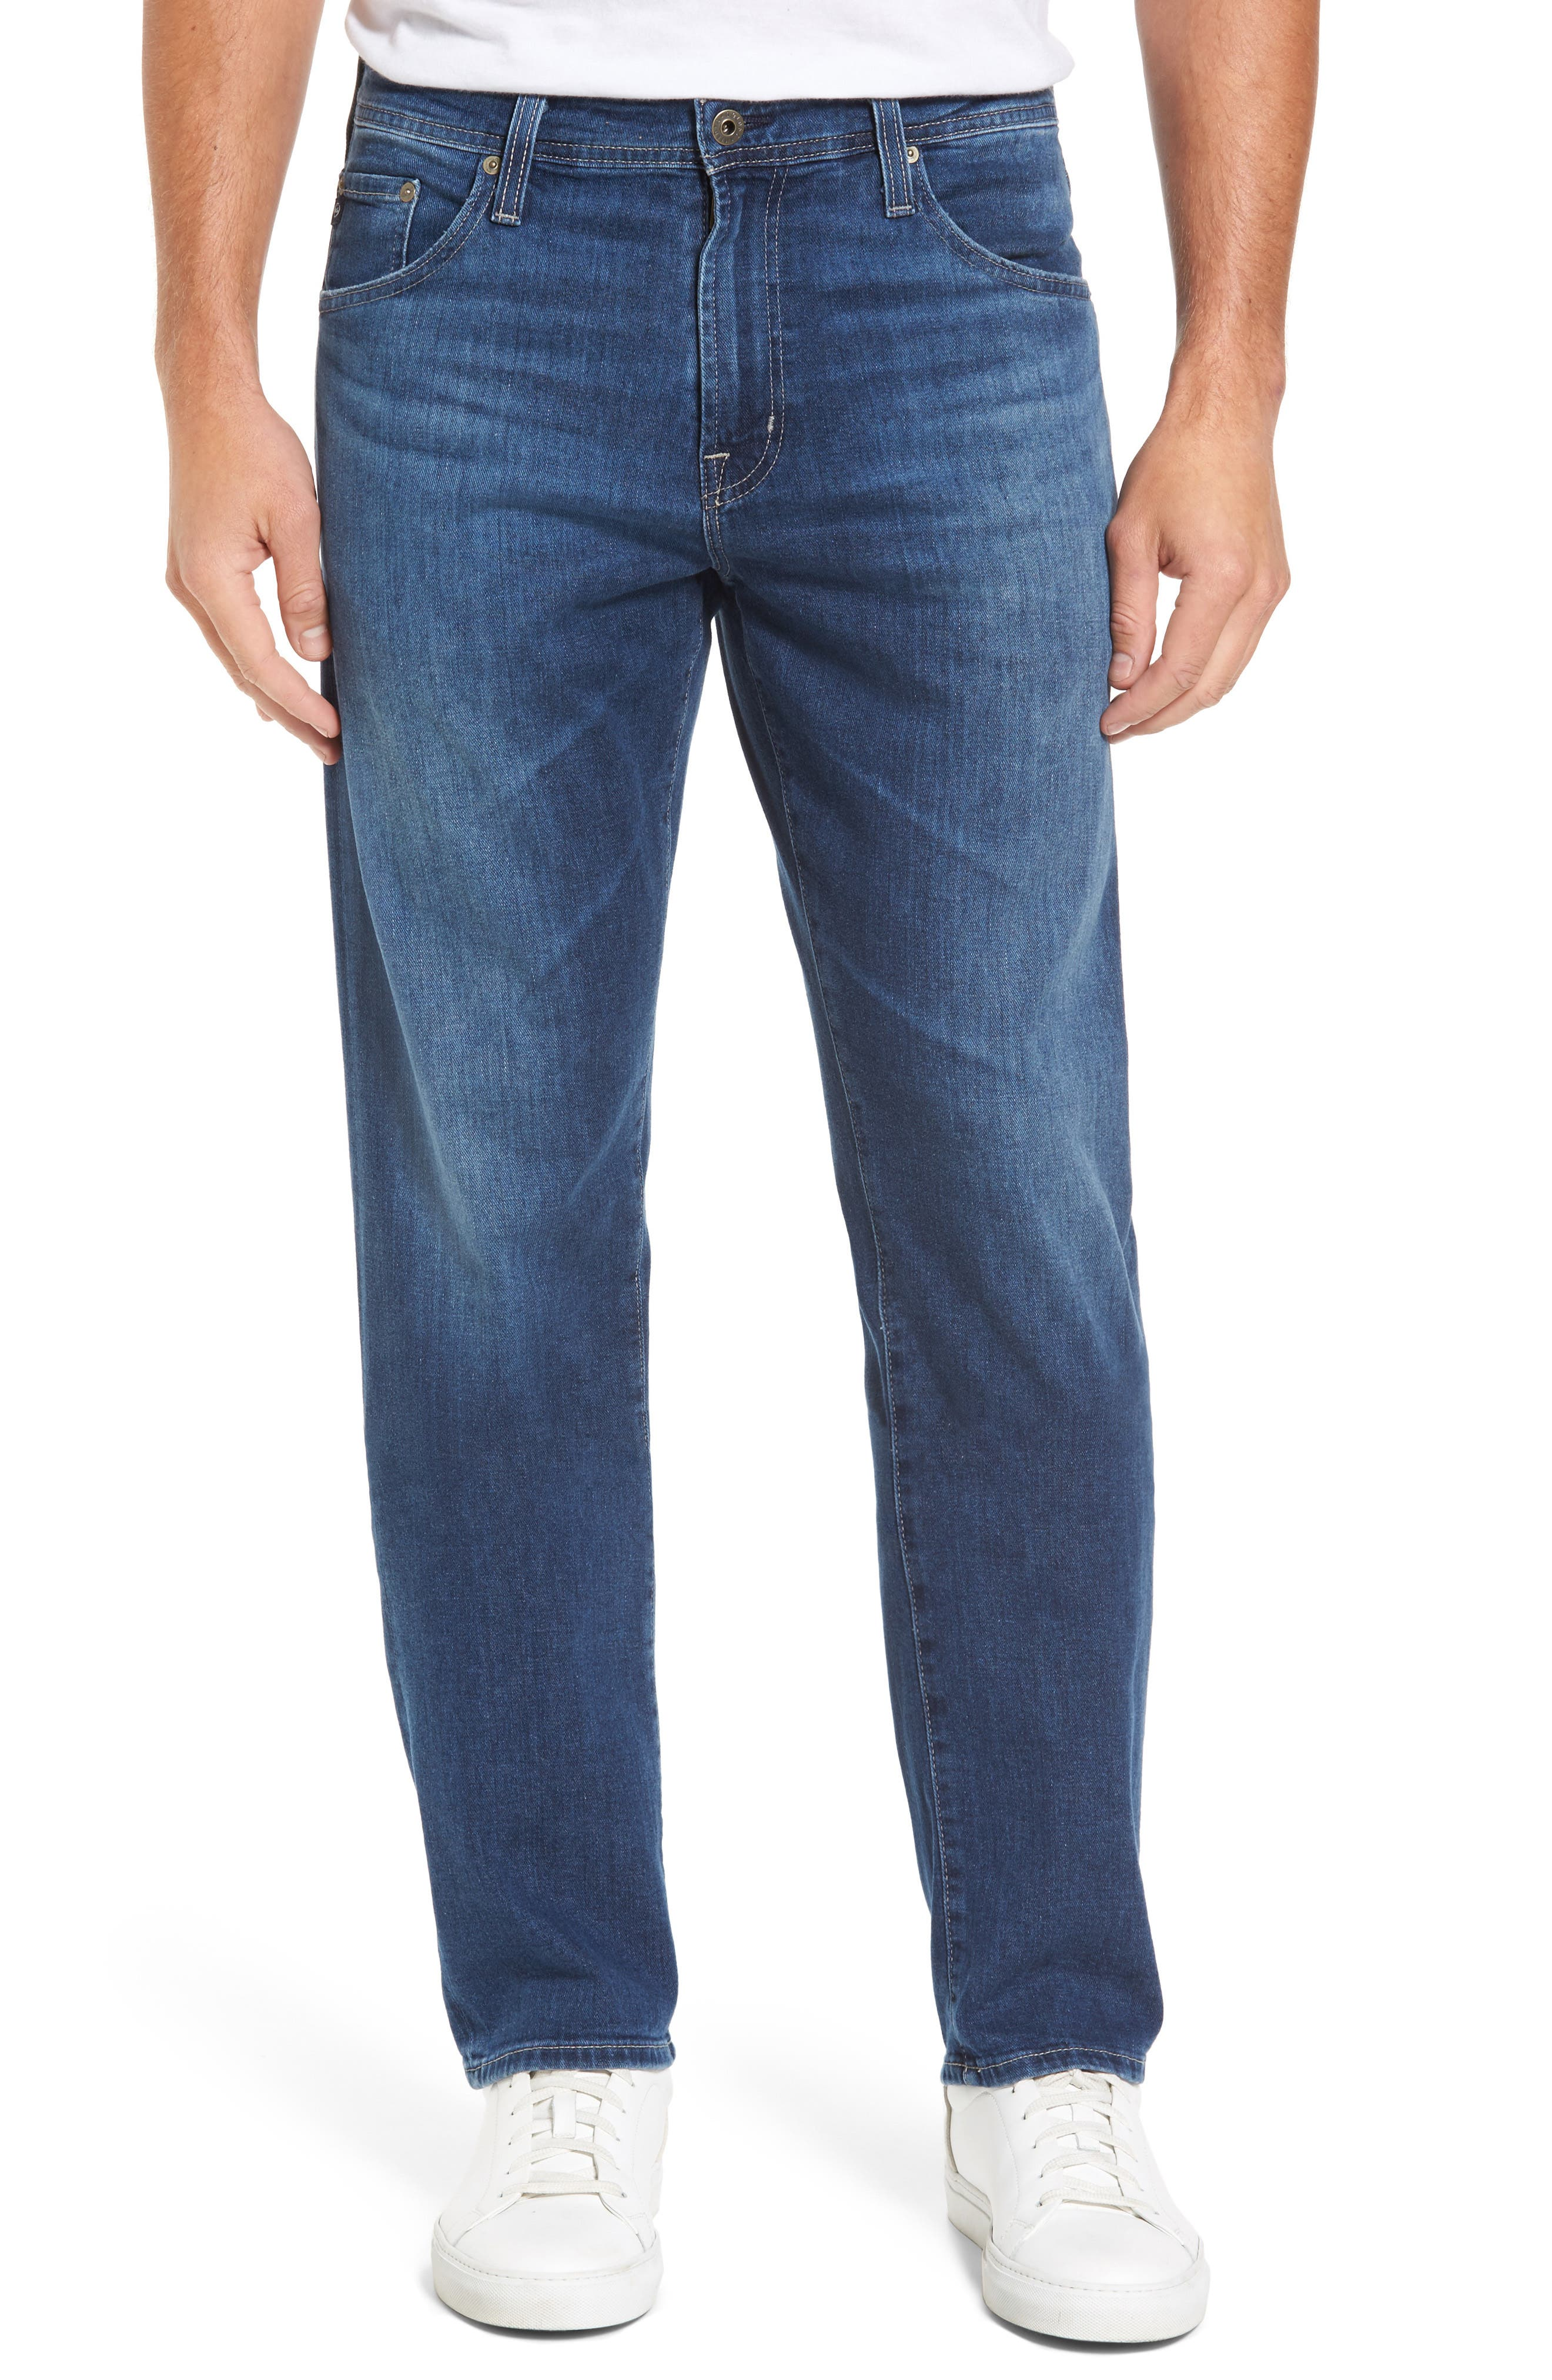 Ives Straight Leg Jeans,                         Main,                         color, 486